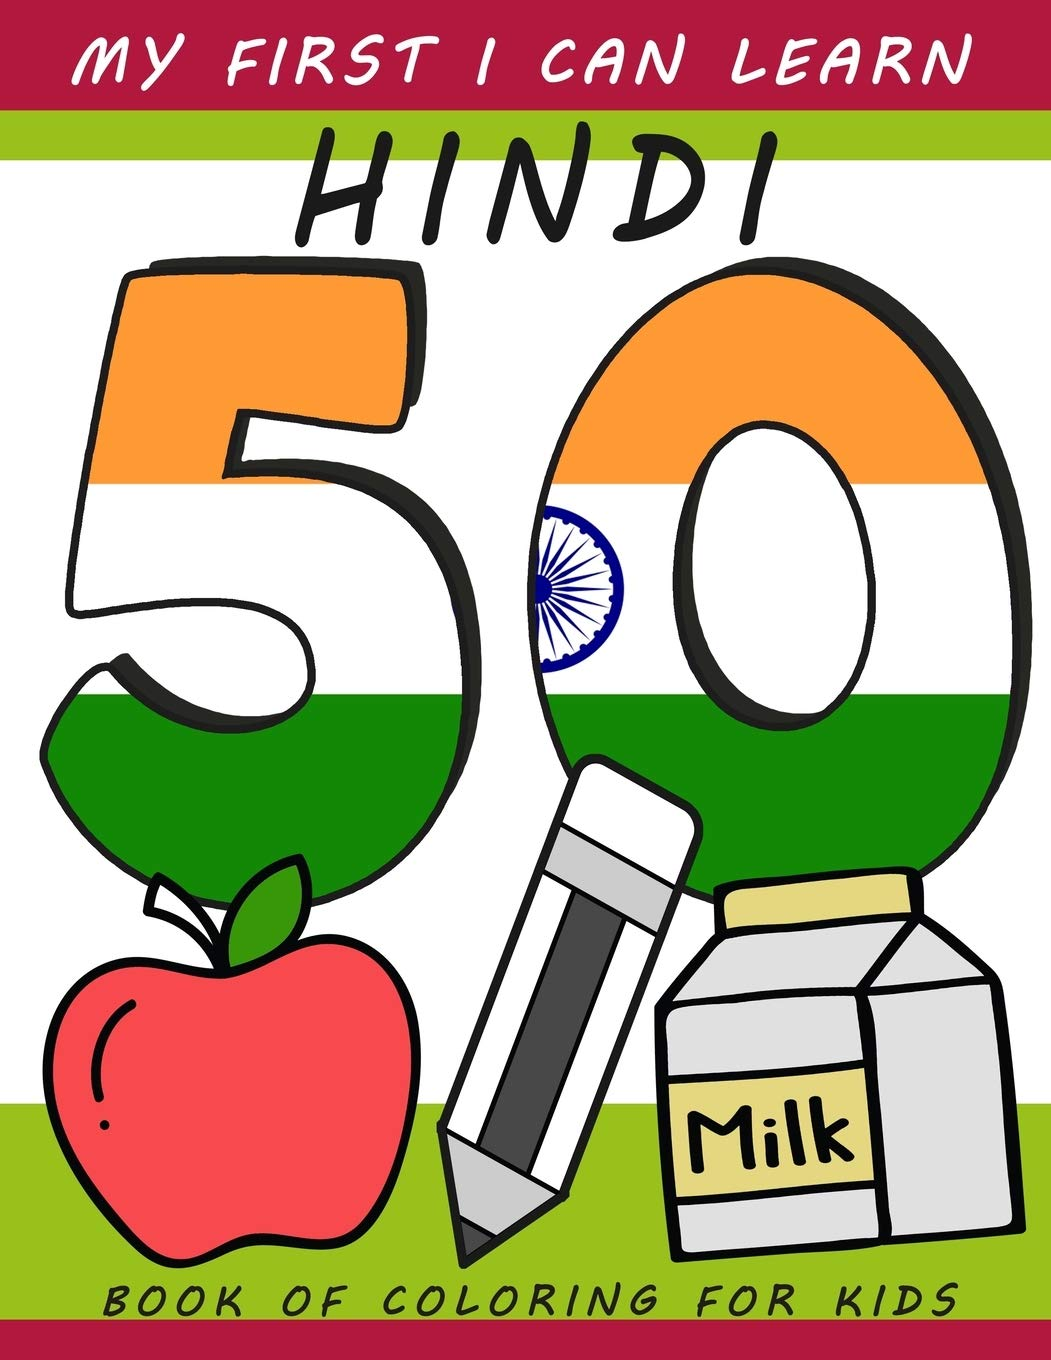 My First I Can Learn Hindi Book Of Coloring For Kids 3 5 Years Preschool Words Coloring Collection For Children Smiths Anna 9781701684188 Amazon Com Books